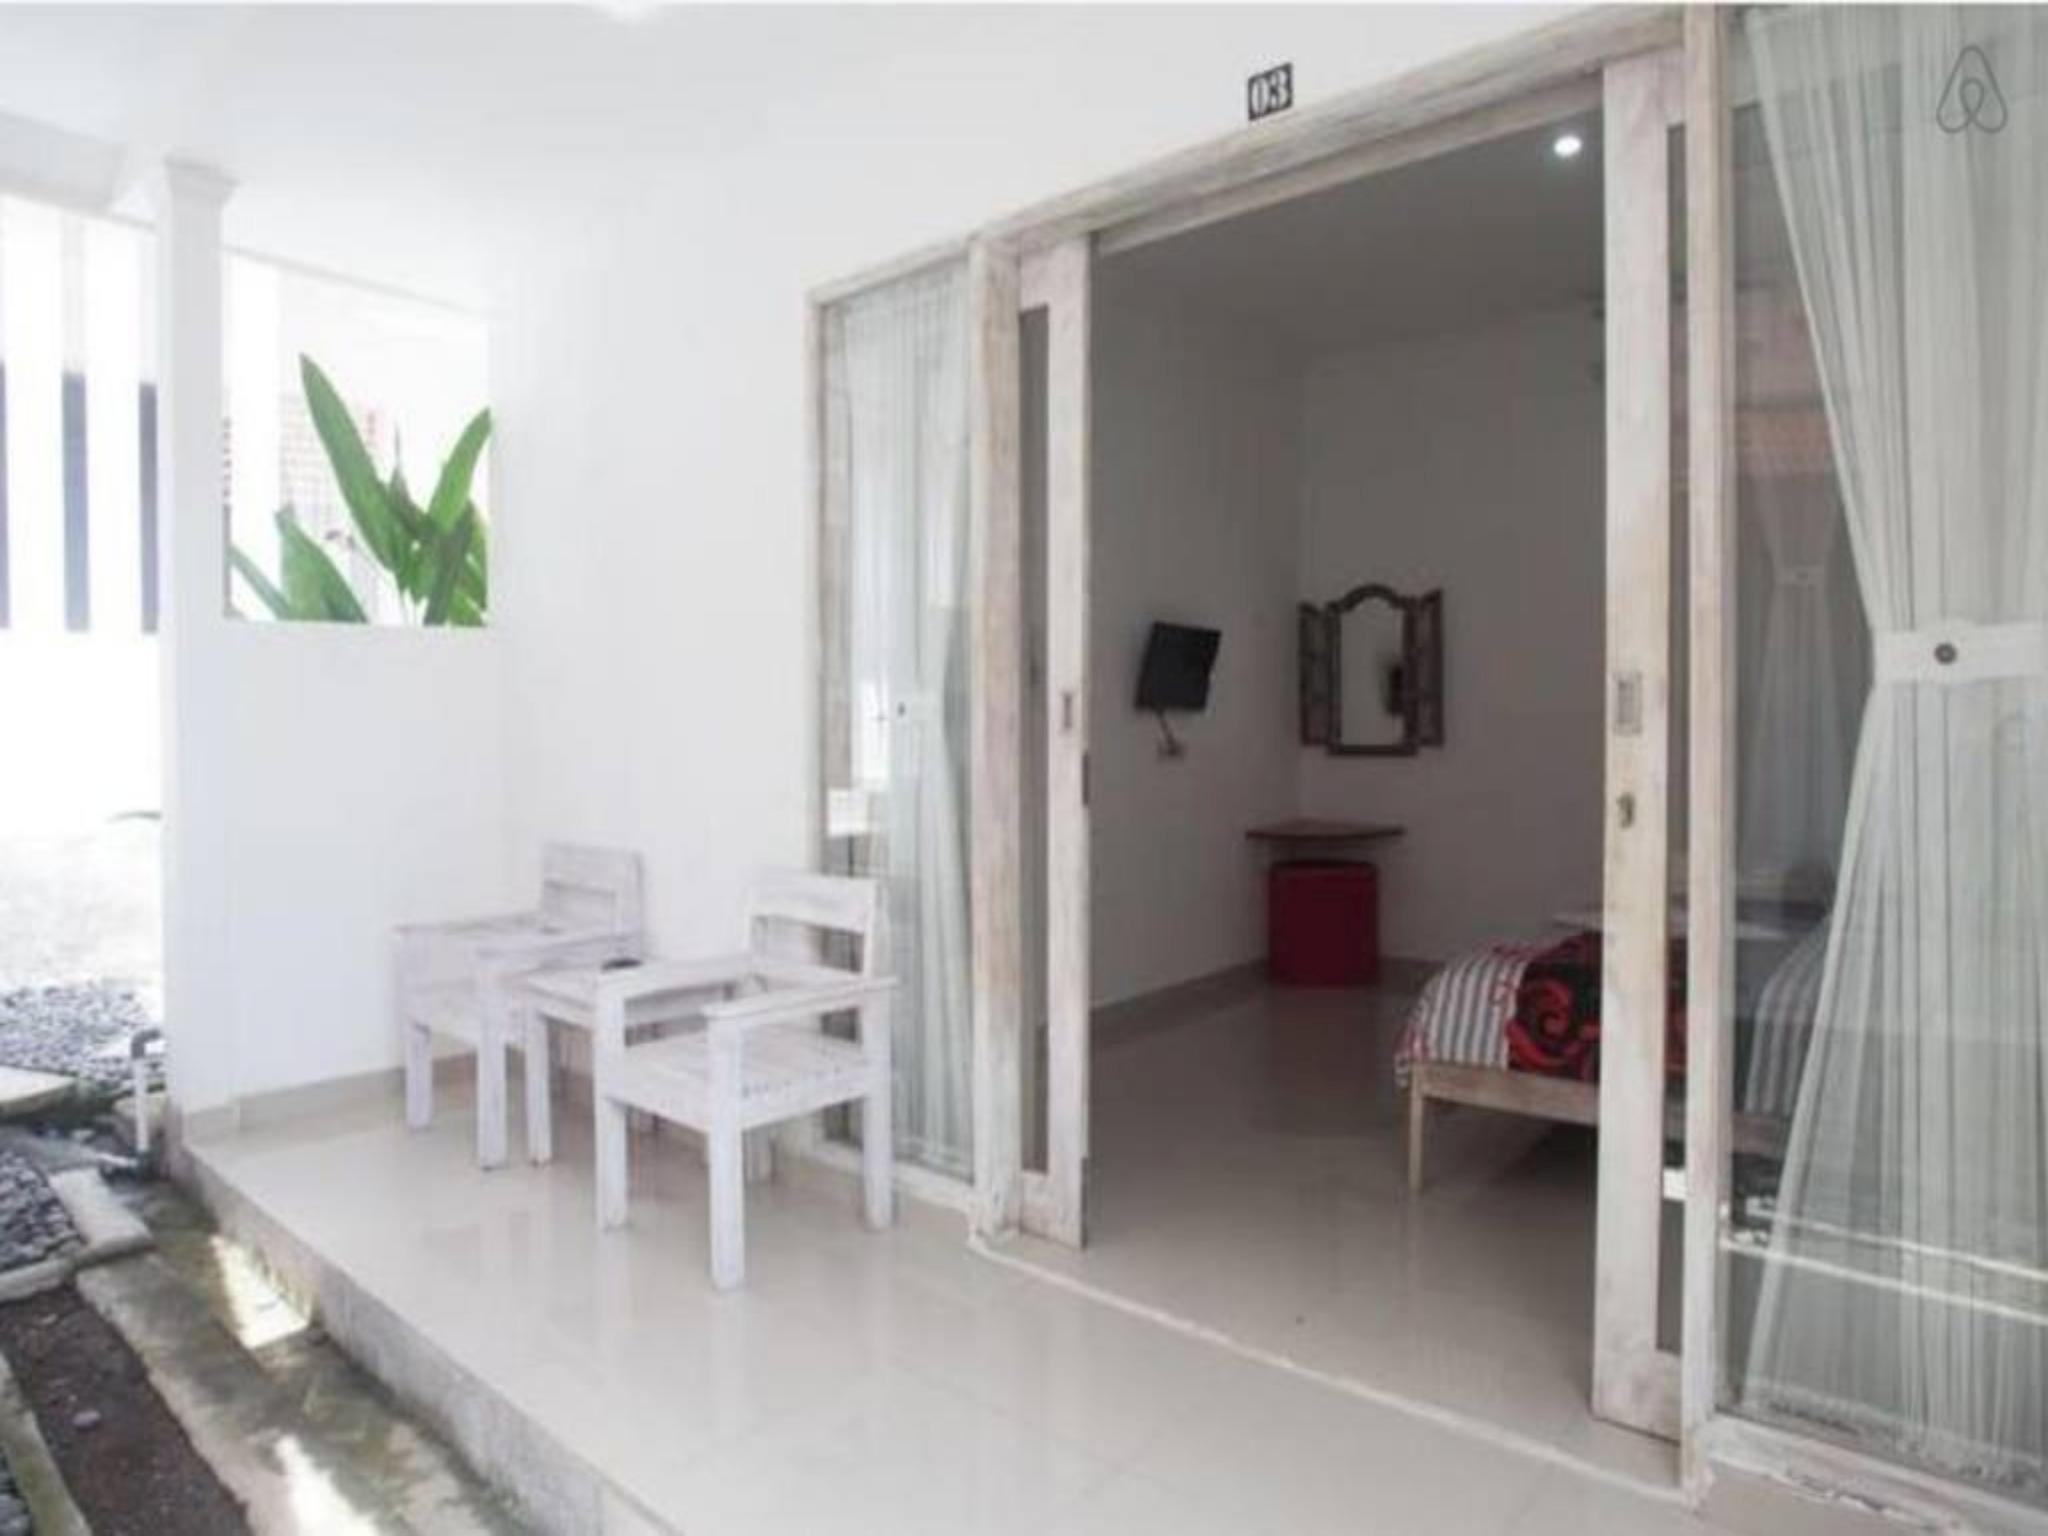 Price RELAX and ENJOY the BALINESE LIFESTYLE VILLA